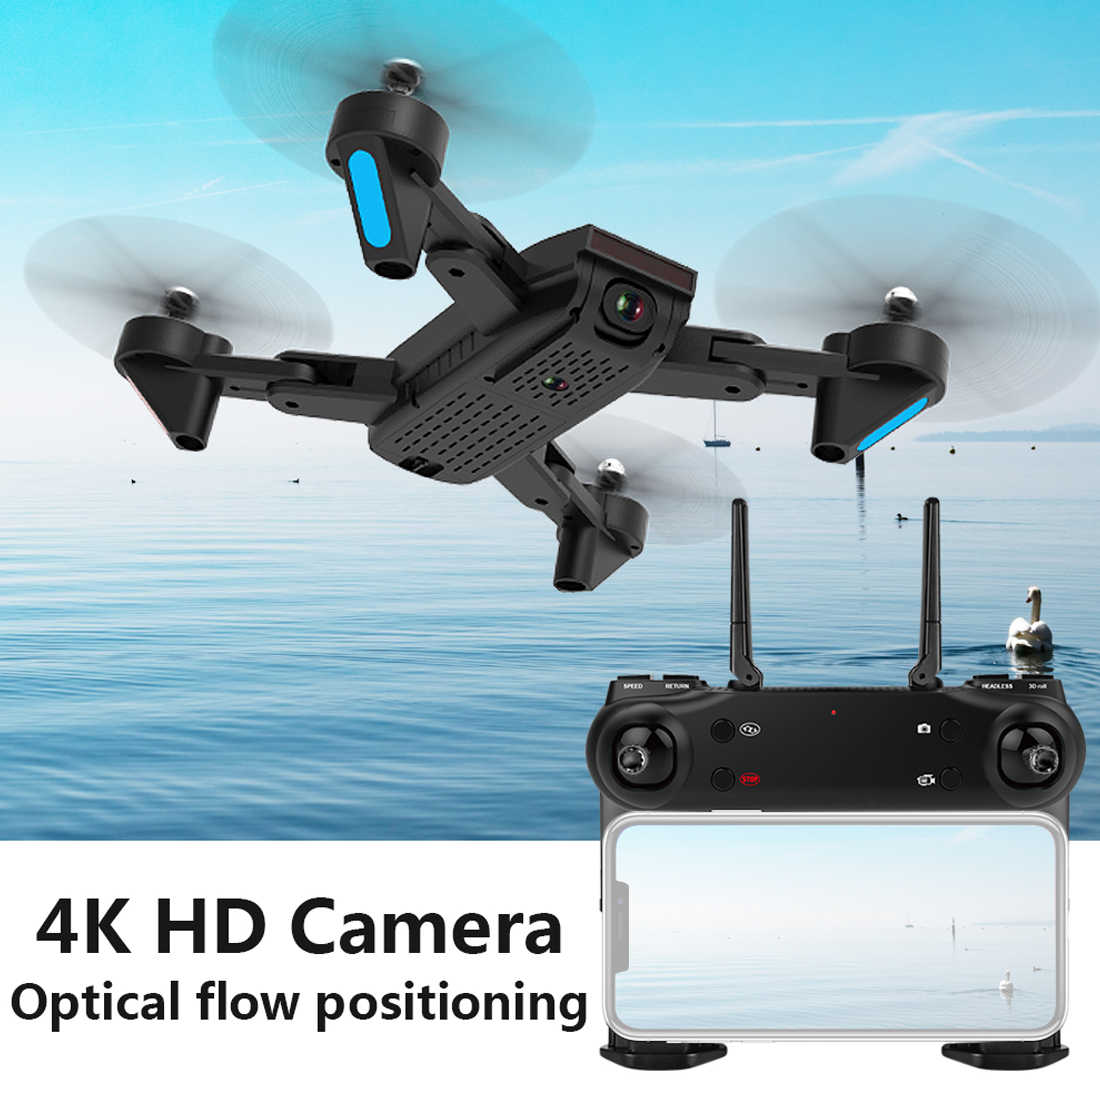 2019 SG700-S 4K Camera Drone Wifi Fpv Dual Camera Groothoek Palm Controle Optische Flow Gebaar Foto Video Selfie rc Quadcopter